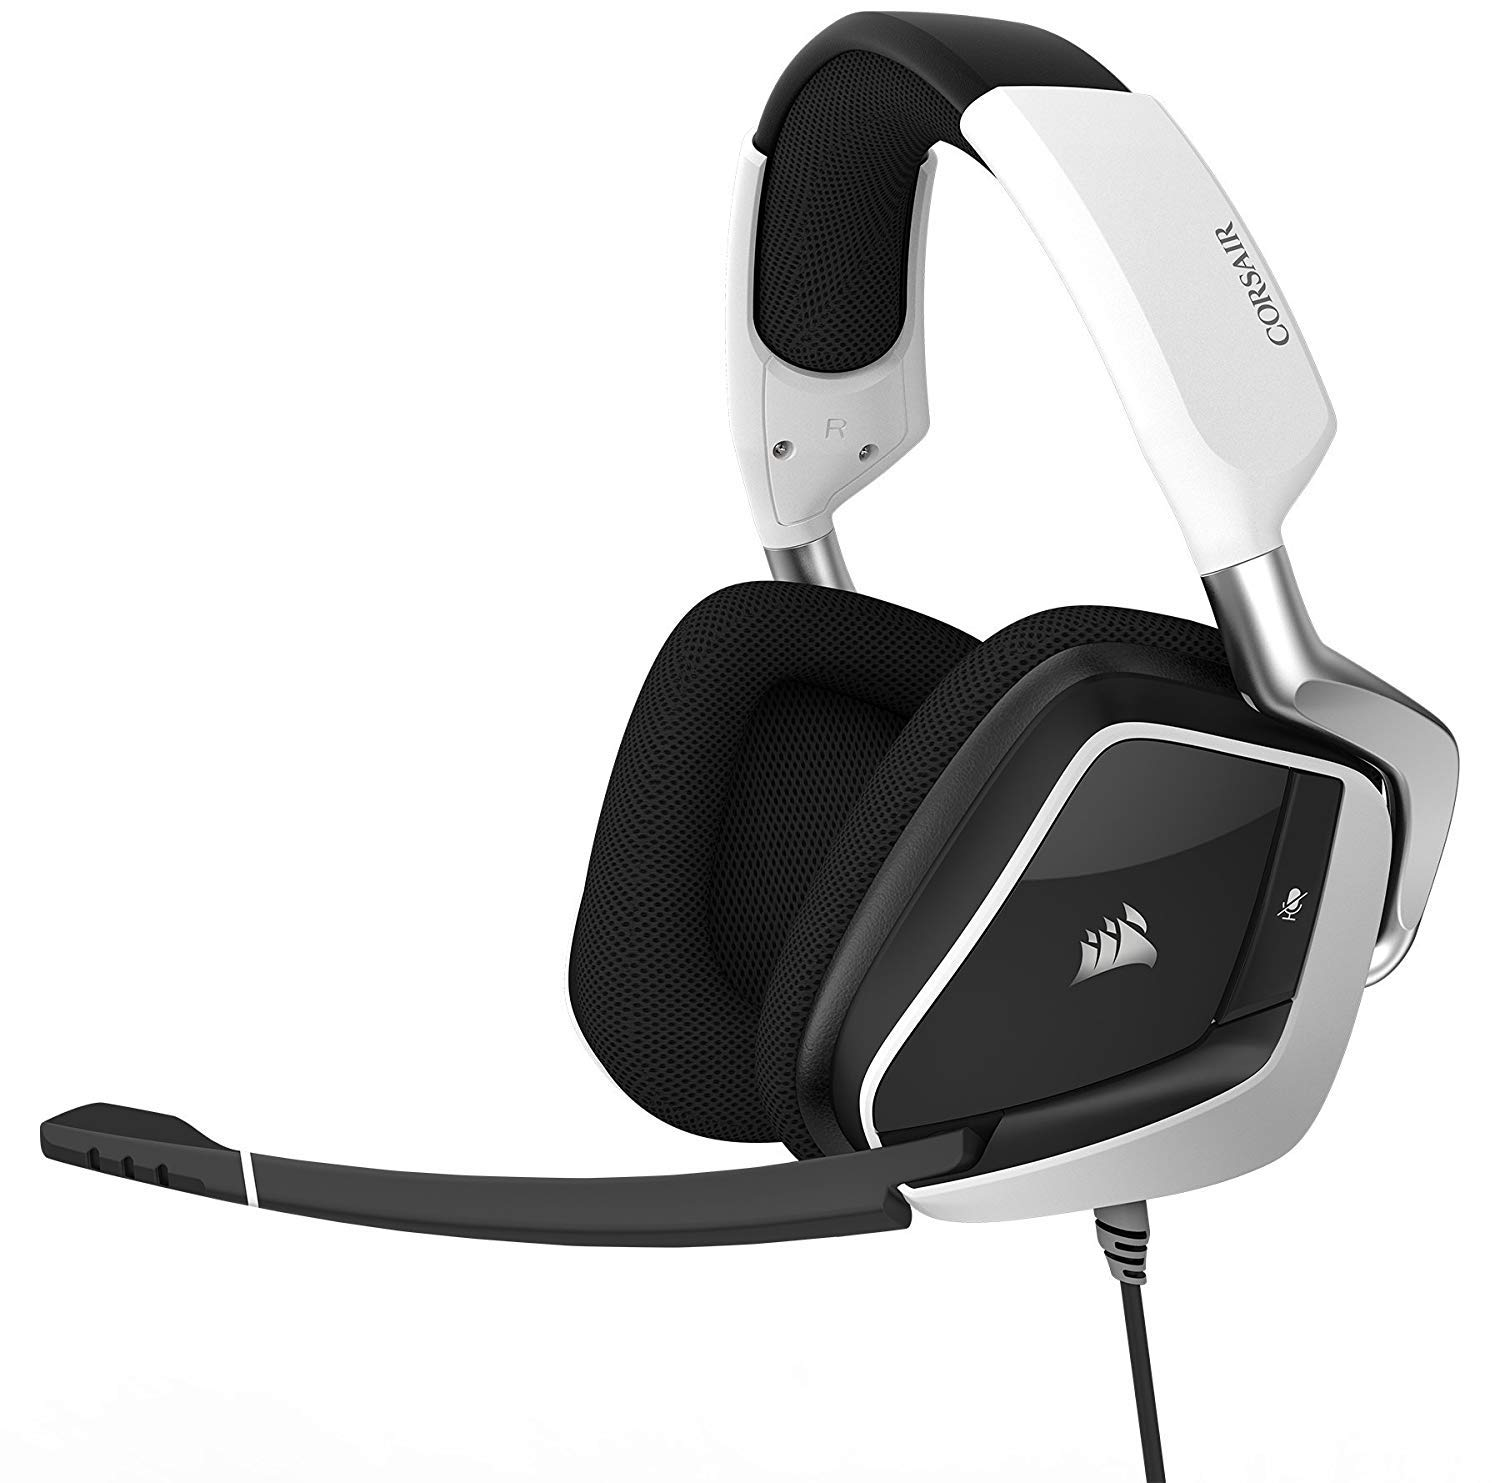 CORSAIR Void PRO RGB USB Gaming Headset - Dolby 7.1 Surround Sound Headphones for PC - Discord Certified - 50mm Drivers - White